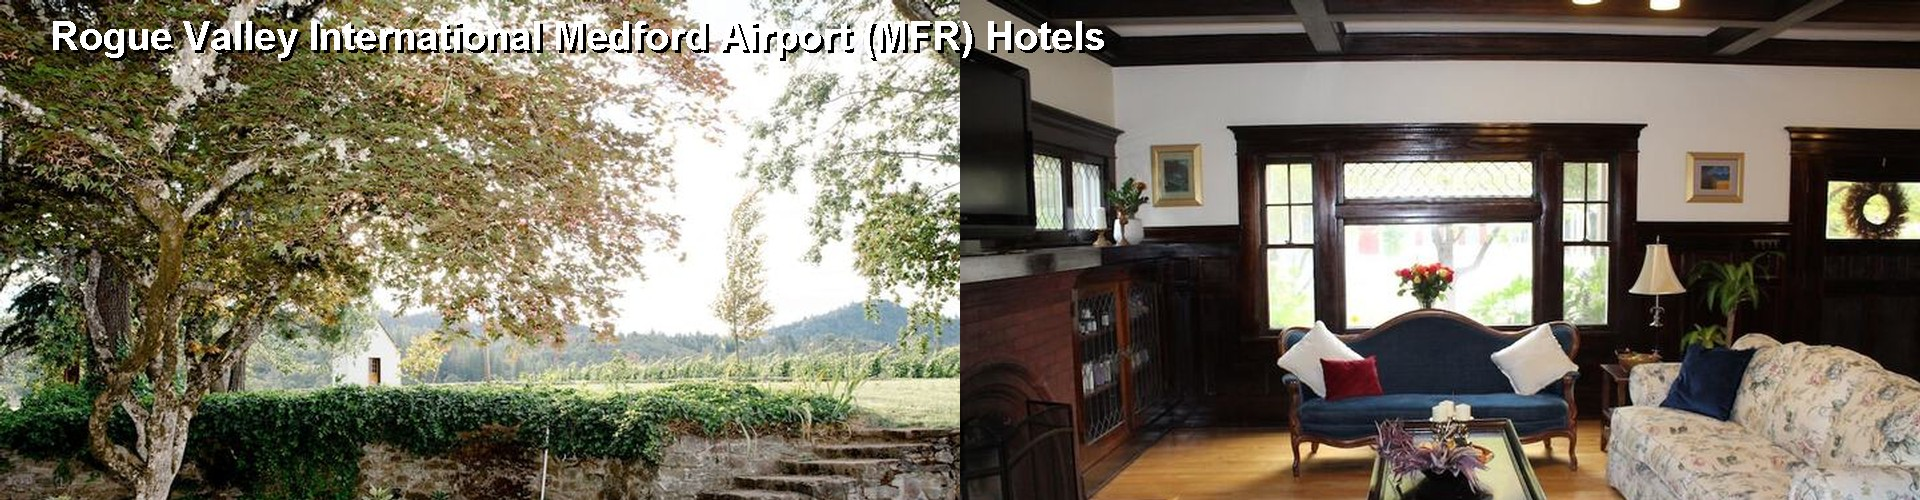 Hotels Near Rogue Valley International Medford Airport (MFR) (OR) ✈